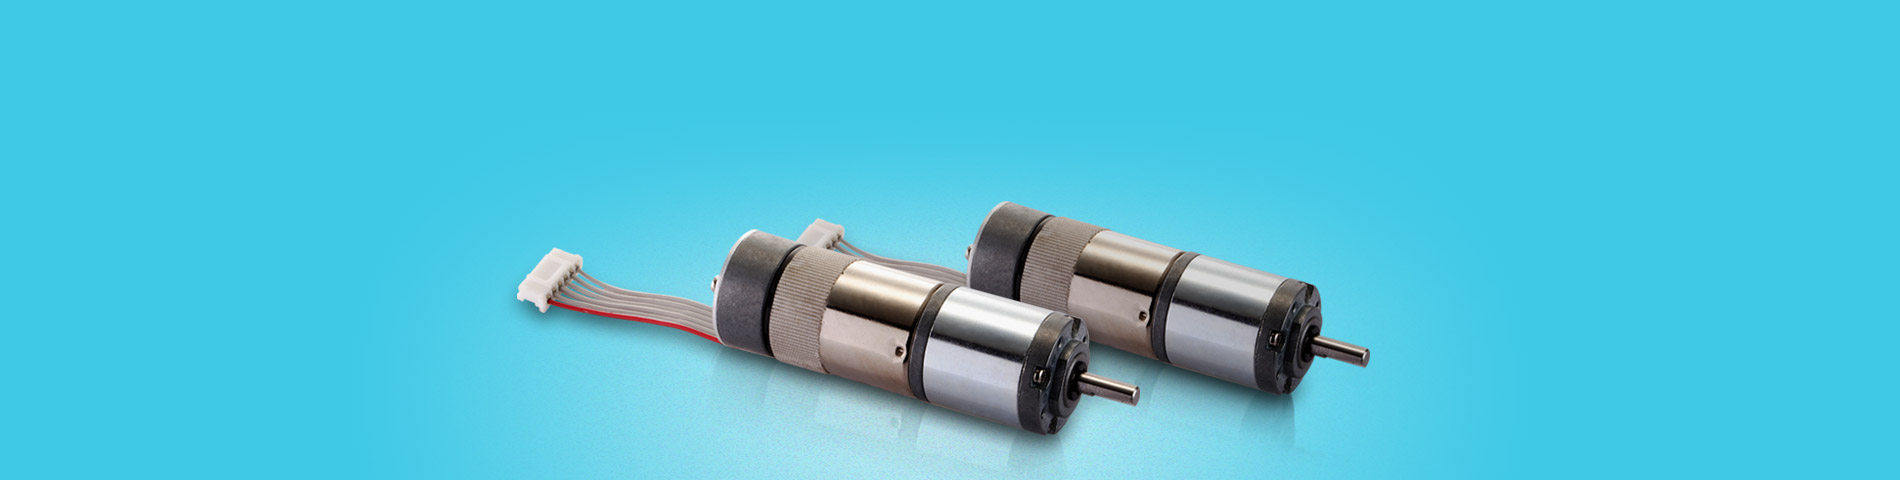 Contact Us for more details and Get the Appropriate Gear Motor to enhance your product value